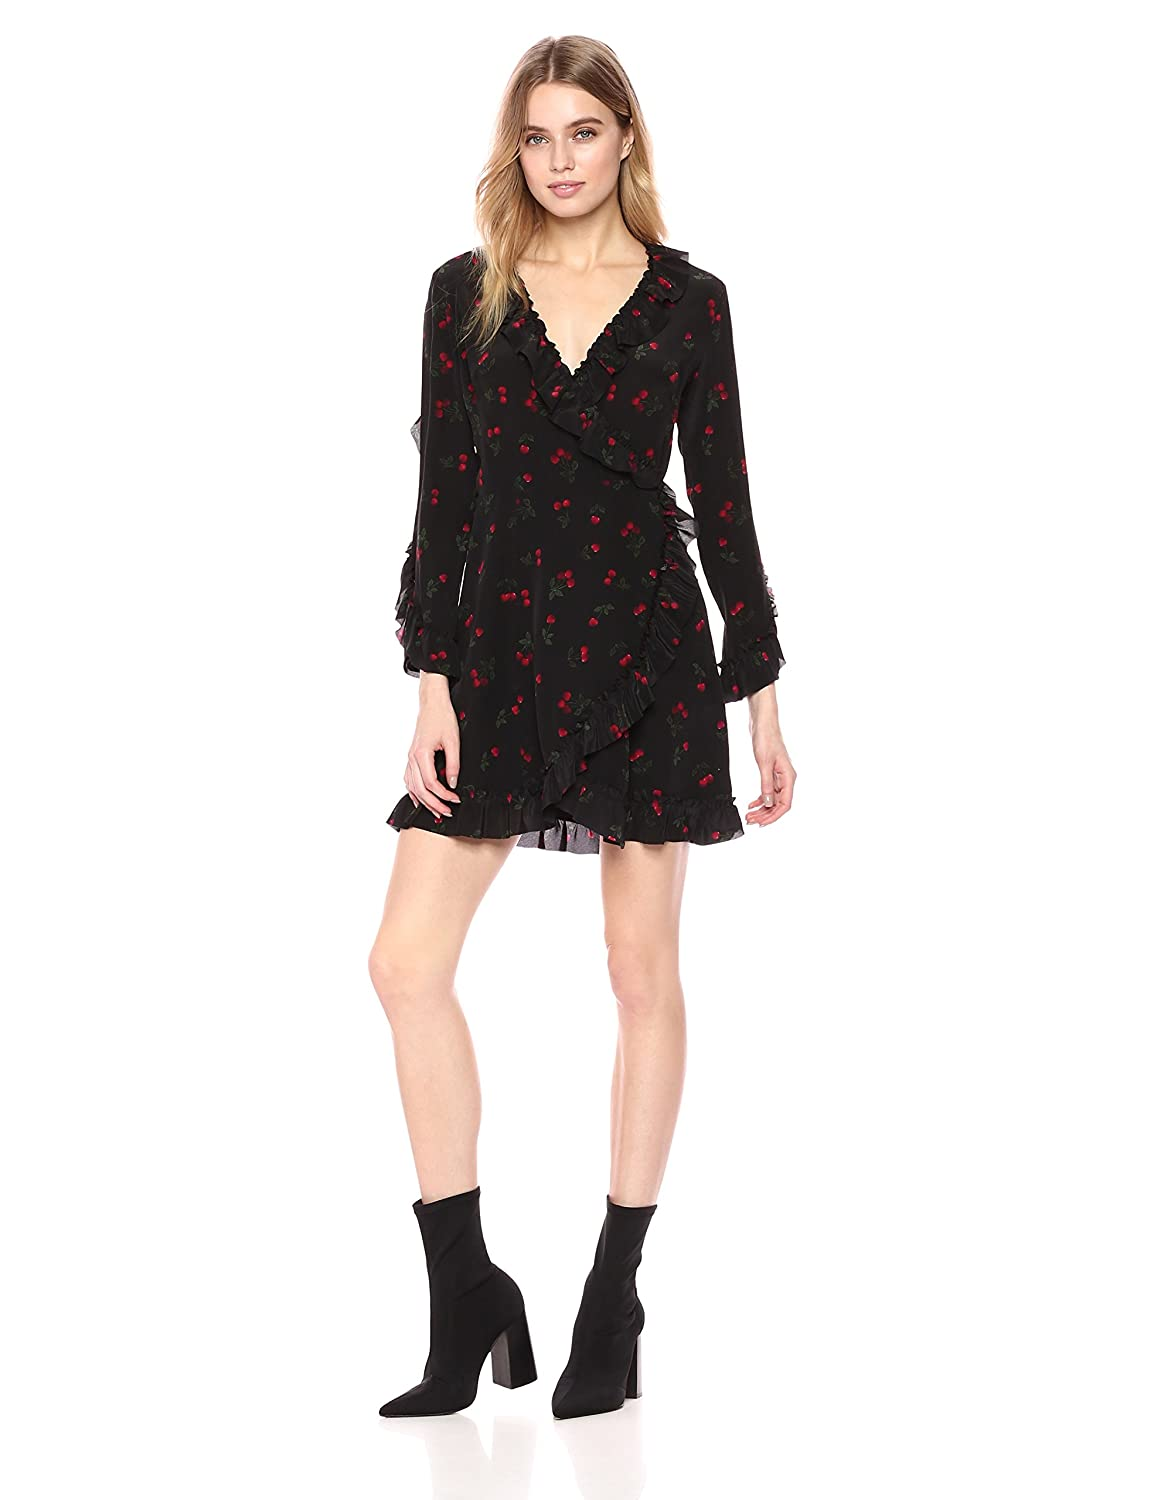 Black The Kooples Womens Cherry Print Silk Wrap Dress Dress